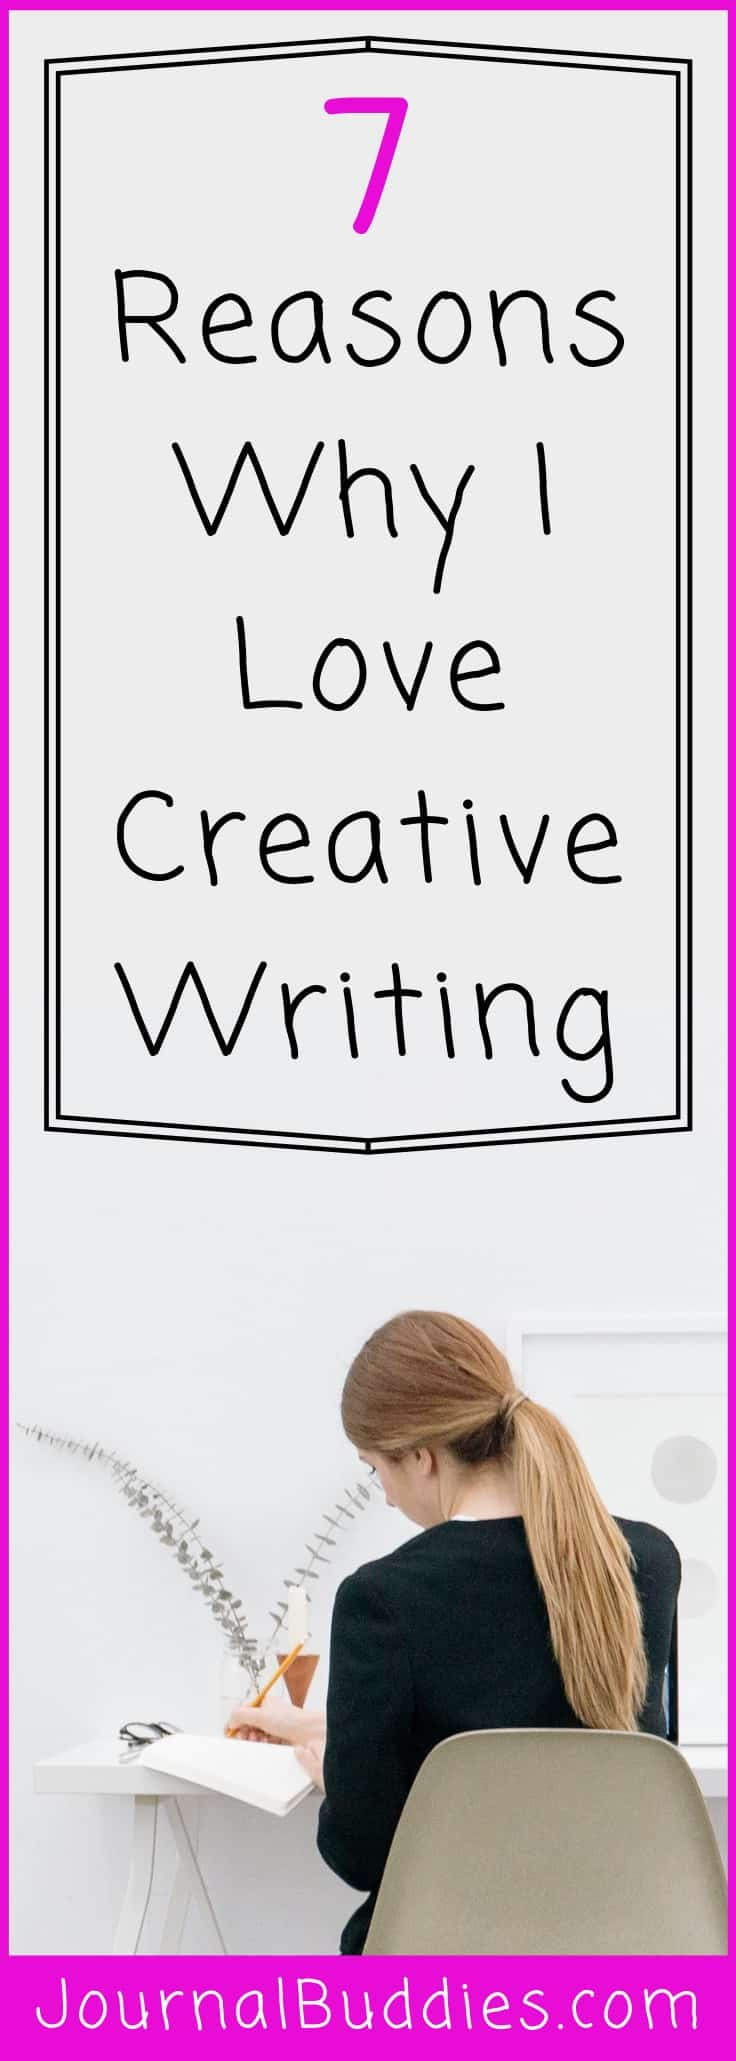 If you're interested in creative writing, just do it! Get a pad and pen and begin to write down your thoughts, your aspirations, and your dreams.